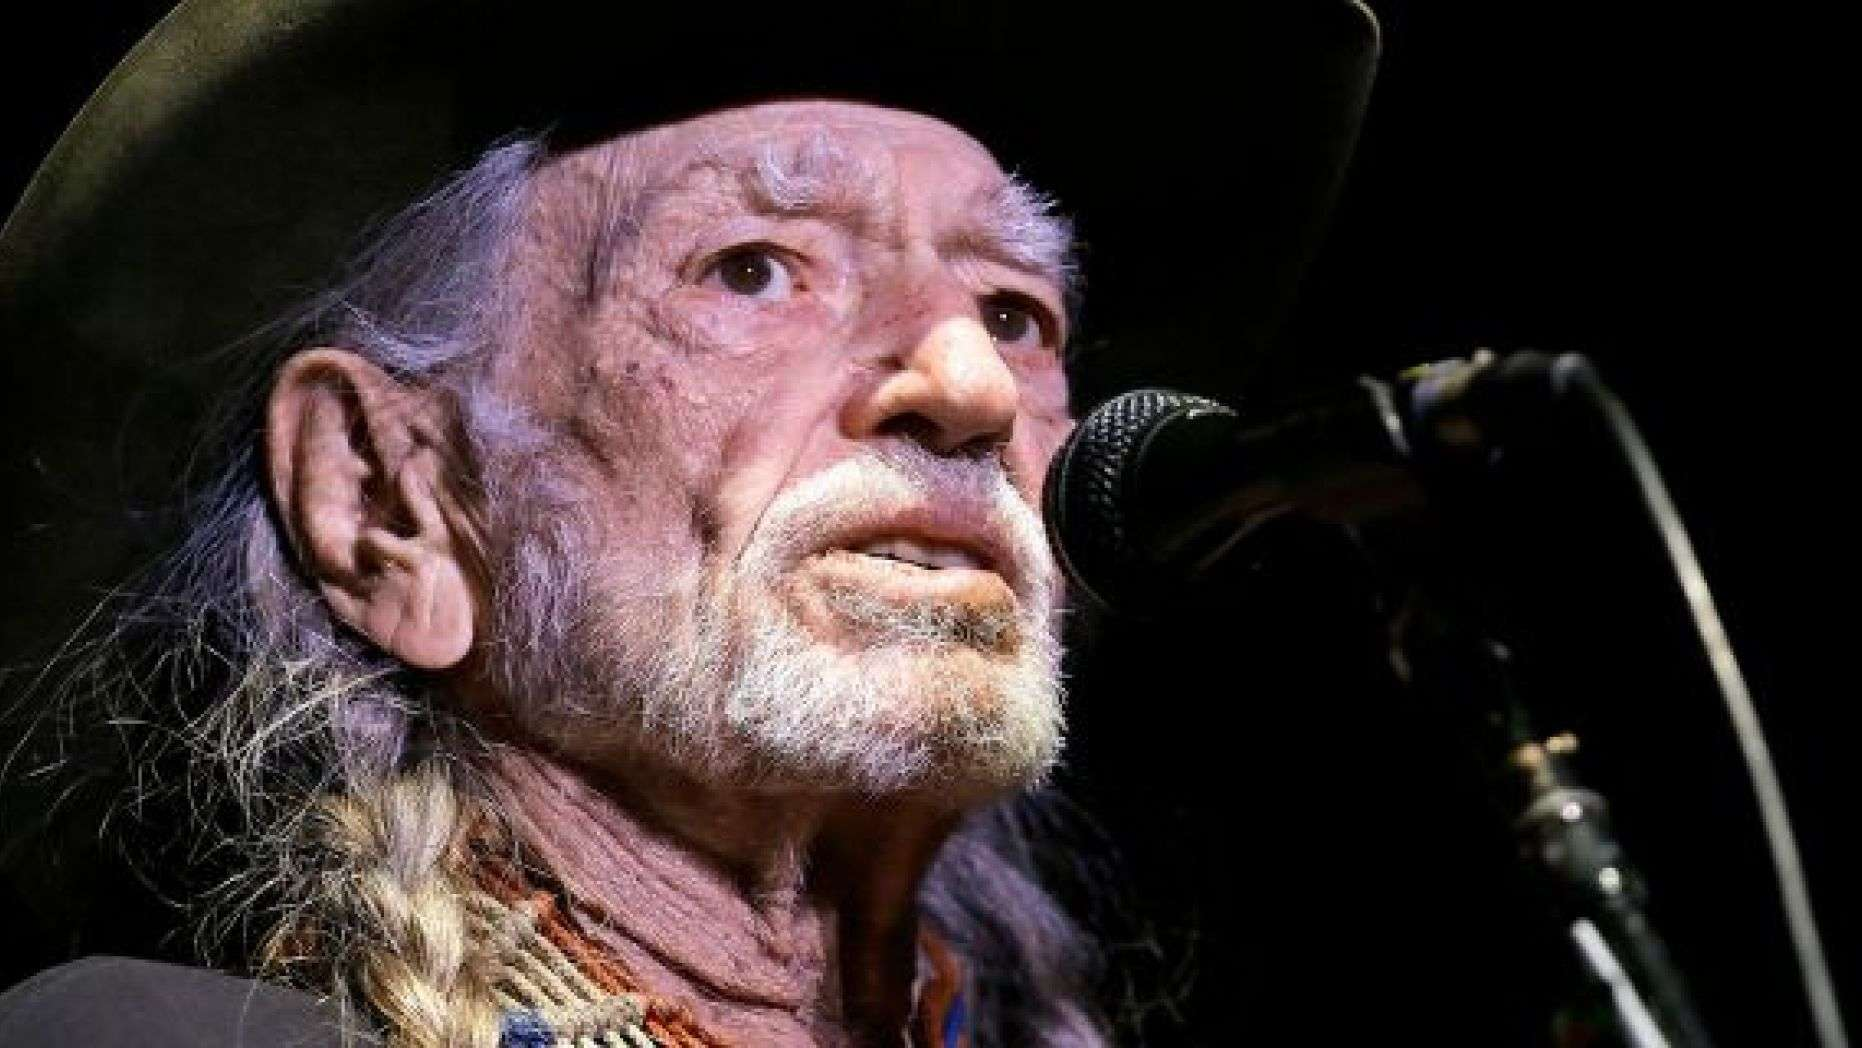 Willie Nelson is one of the celebrity with double lives as he also work as an environmental activist